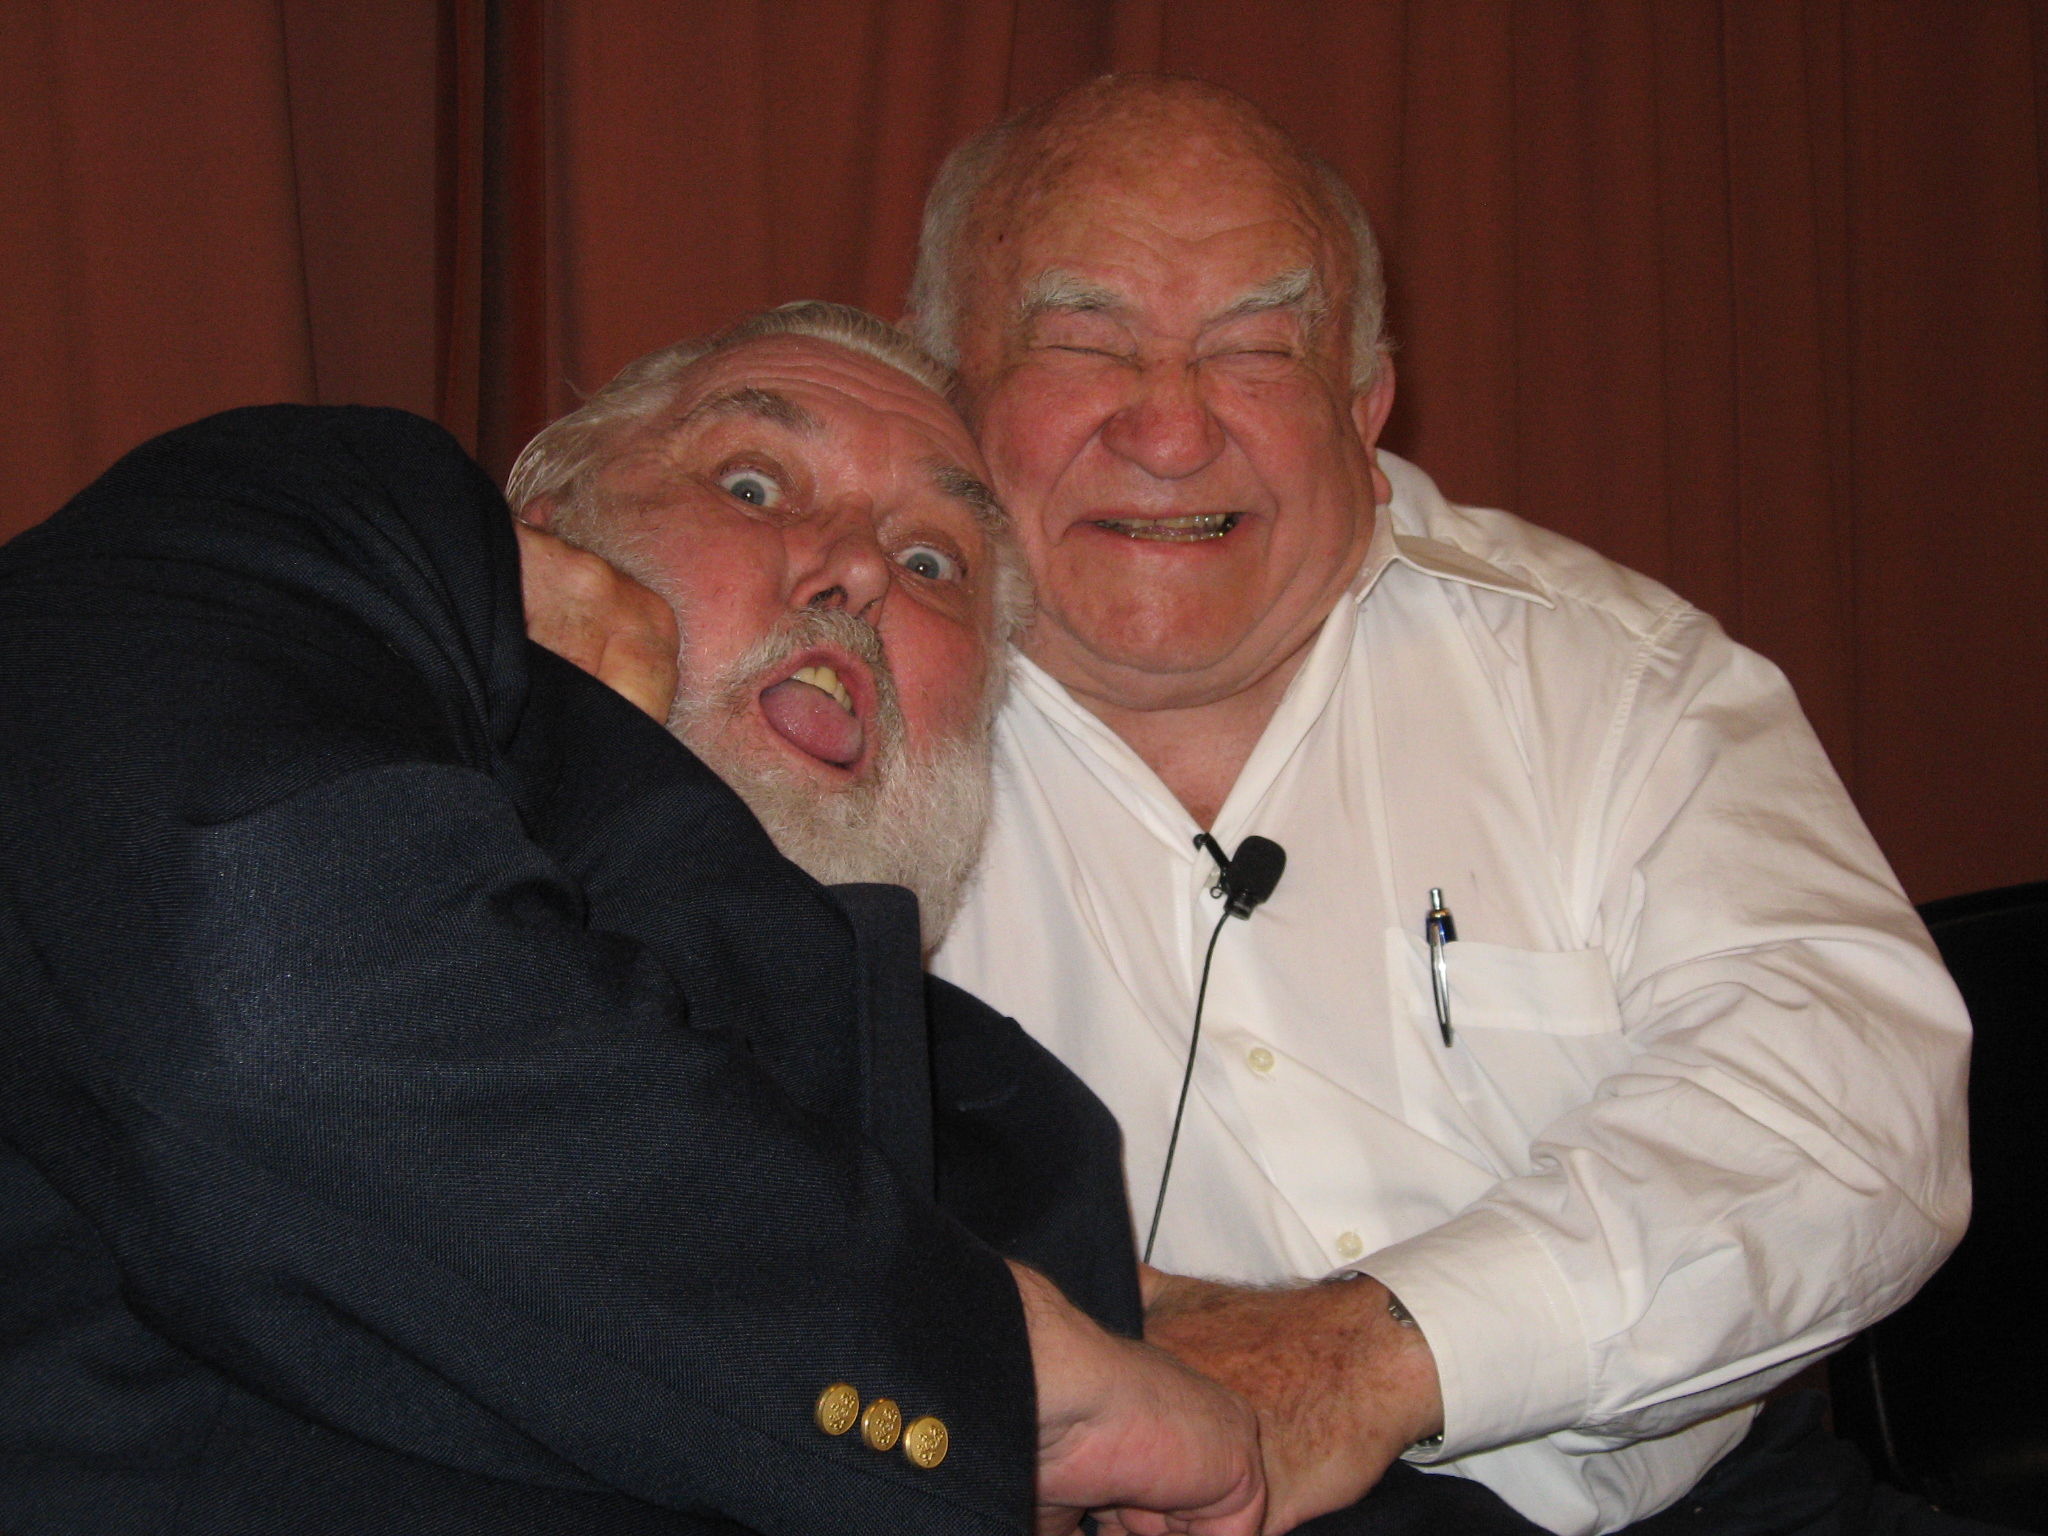 Jim Brochu, Ed Asner